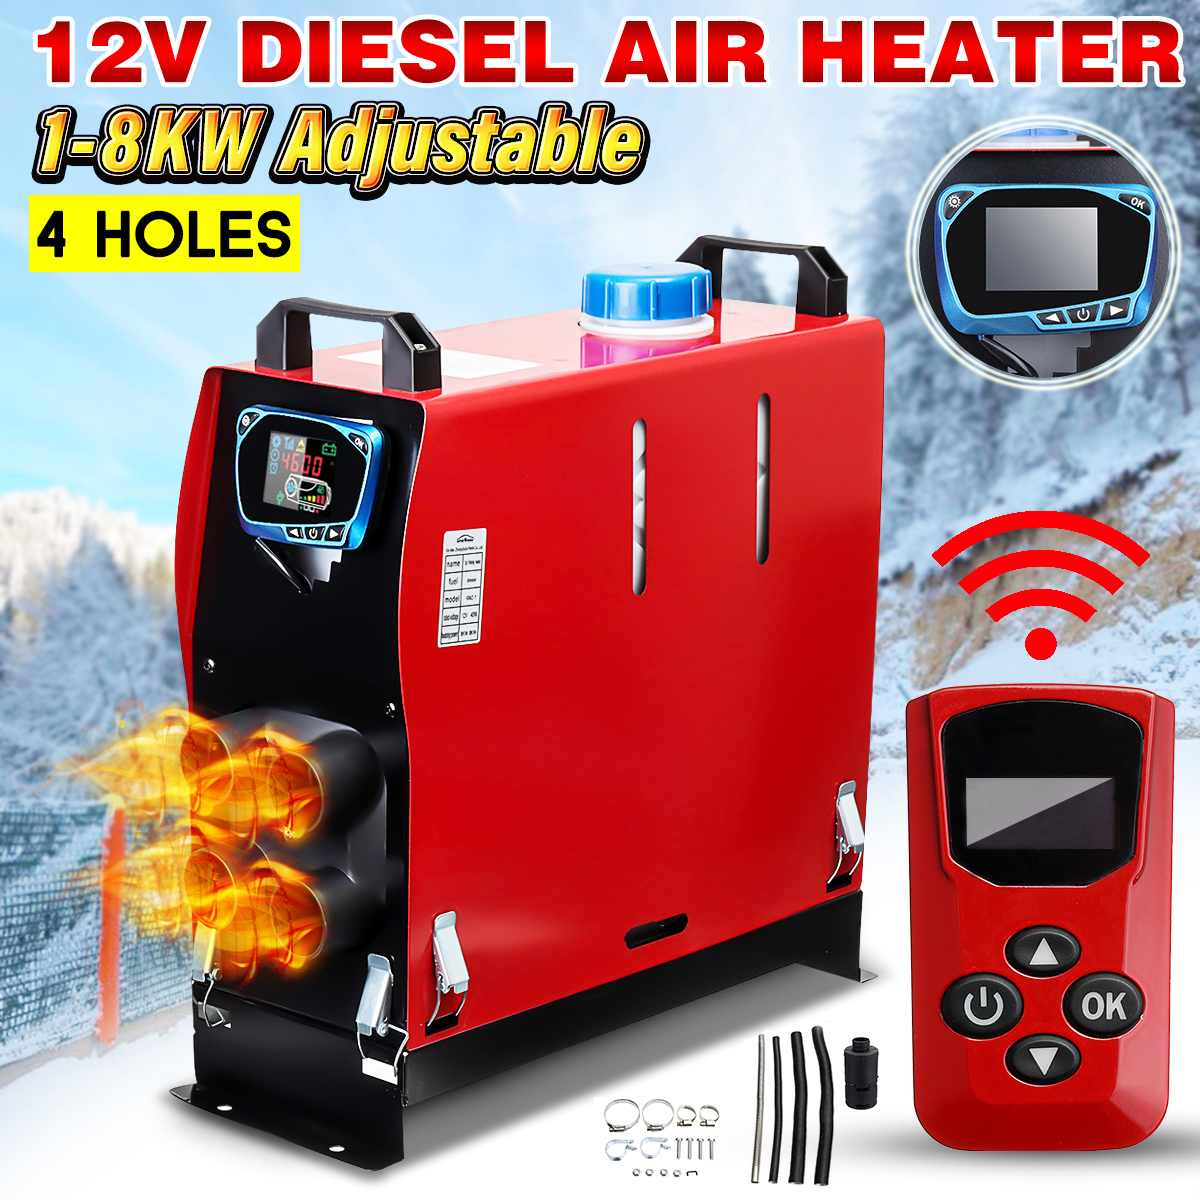 All In One Air diesels Heater 1KW-8KW Adjustable 12V 4 Holes Car Heater For Motor-Homes Boats Bus +LCD Switch+English RemoteAll In One Air diesels Heater 1KW-8KW Adjustable 12V 4 Holes Car Heater For Motor-Homes Boats Bus +LCD Switch+English Remote